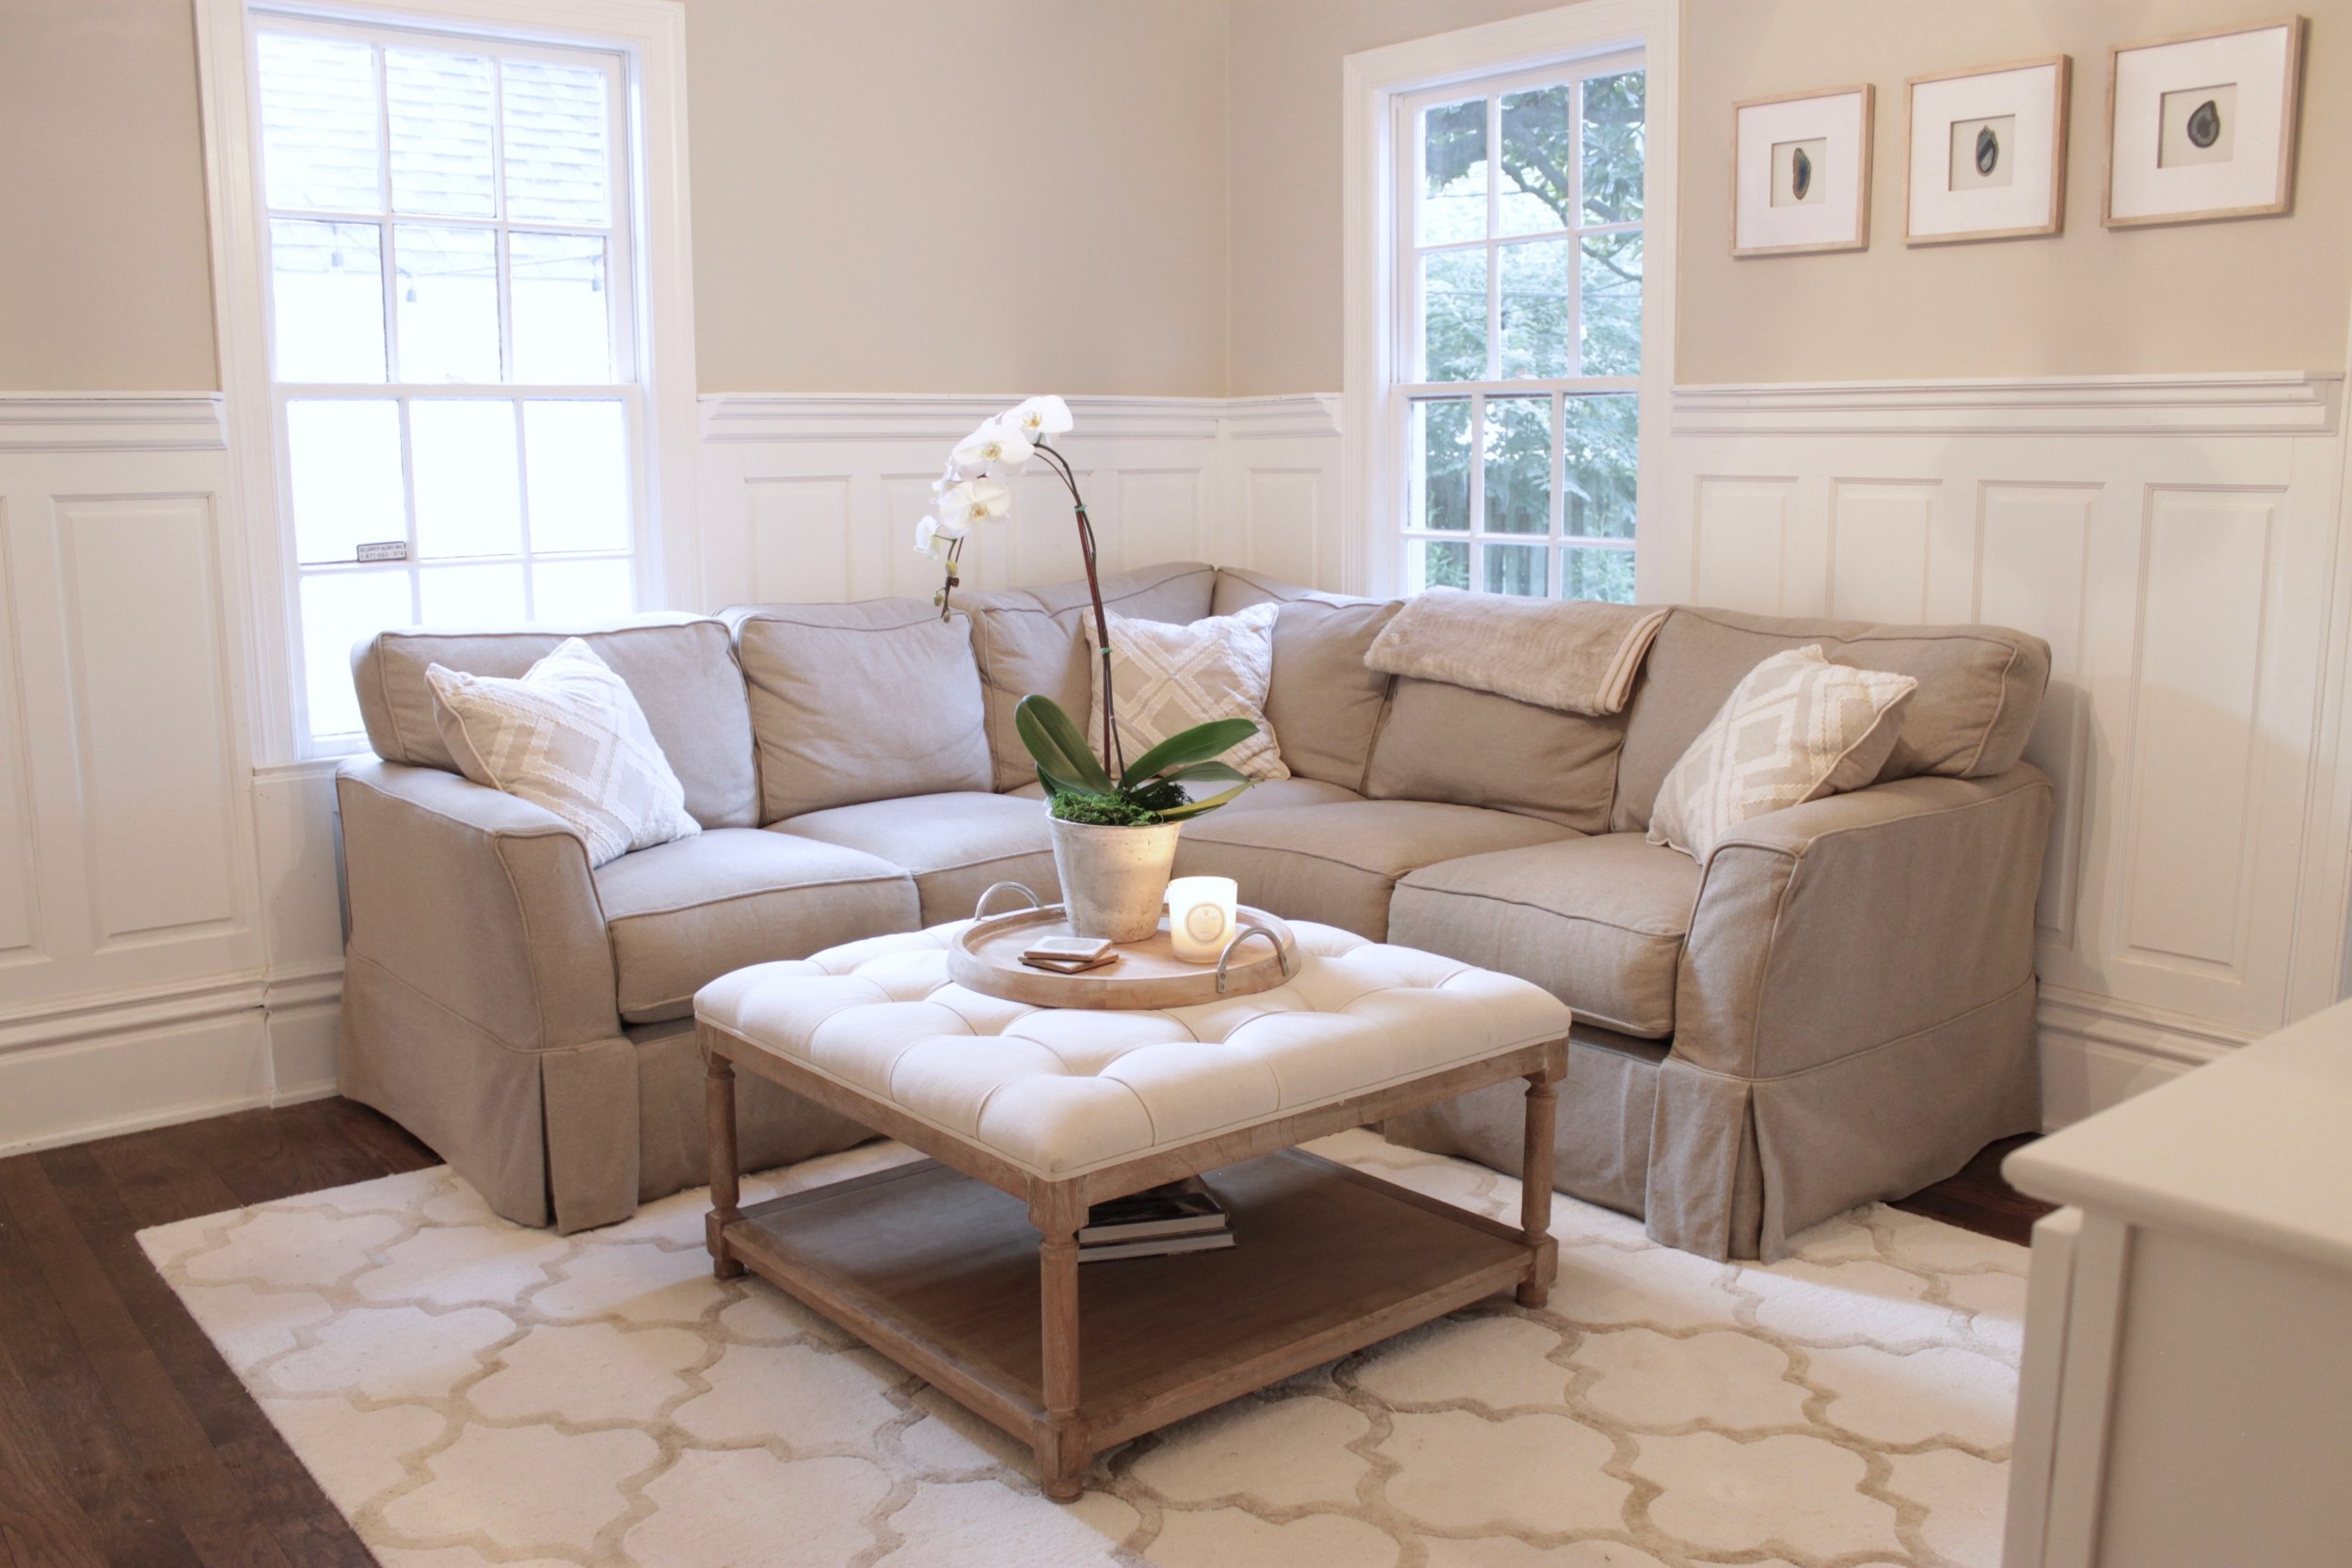 Prime Design Memphis, LLC - Family Room, Agreeable Gray, White Wainscoting, Sectional, Neutral, Orchid, Tufted Ottoman, Built-in